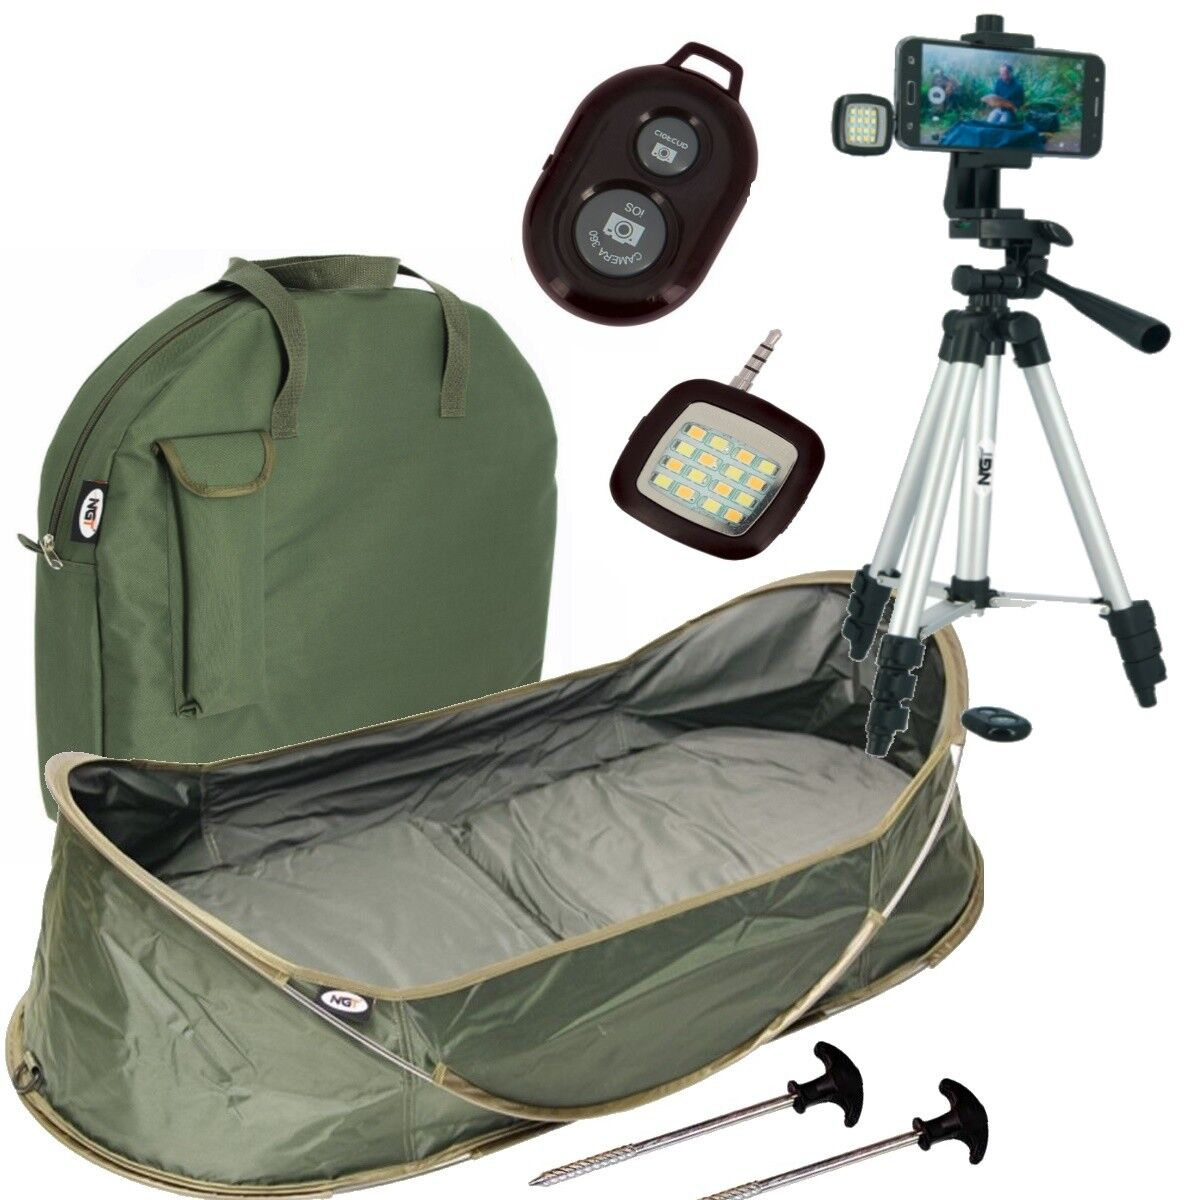 NGT Carpa Culla Pop Up dello sgancio mat e pesca Foto Selfie Camera Tripod